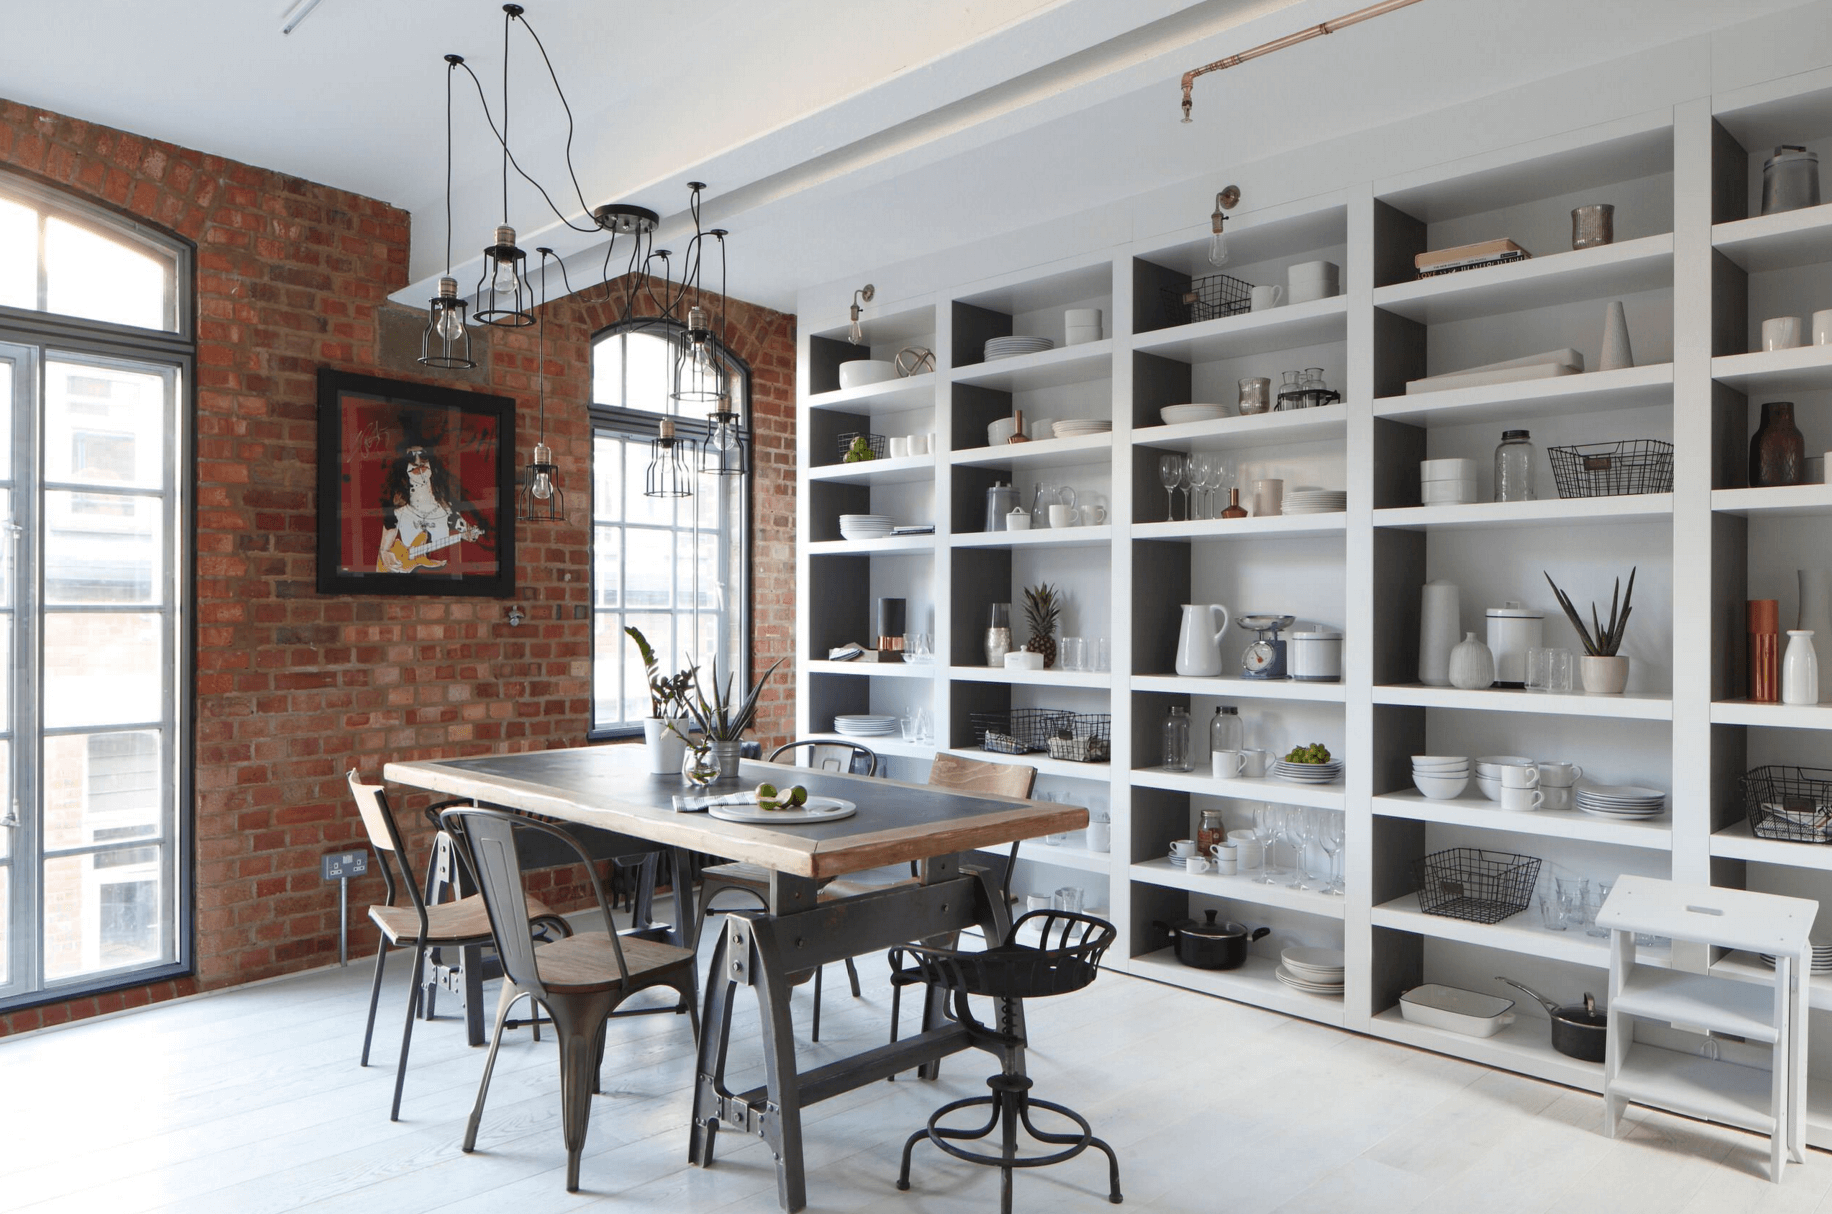 28 Creative Open Shelving Ideas - Freshome.com on office wall ideas, open kitchen sink ideas, open kitchen shelves ideas, open kitchen design ideas, bar wall ideas, pool wall ideas, vaulted ceiling wall ideas, entrance wall ideas, open kitchen layout ideas, open floor ideas, refrigerator wall ideas, tile floor wall ideas, open kitchen decorating, dining wall ideas, outdoor seating wall ideas, open cabinets ideas, open kitchen home ideas, living wall ideas, screened porch wall ideas, deck wall ideas,